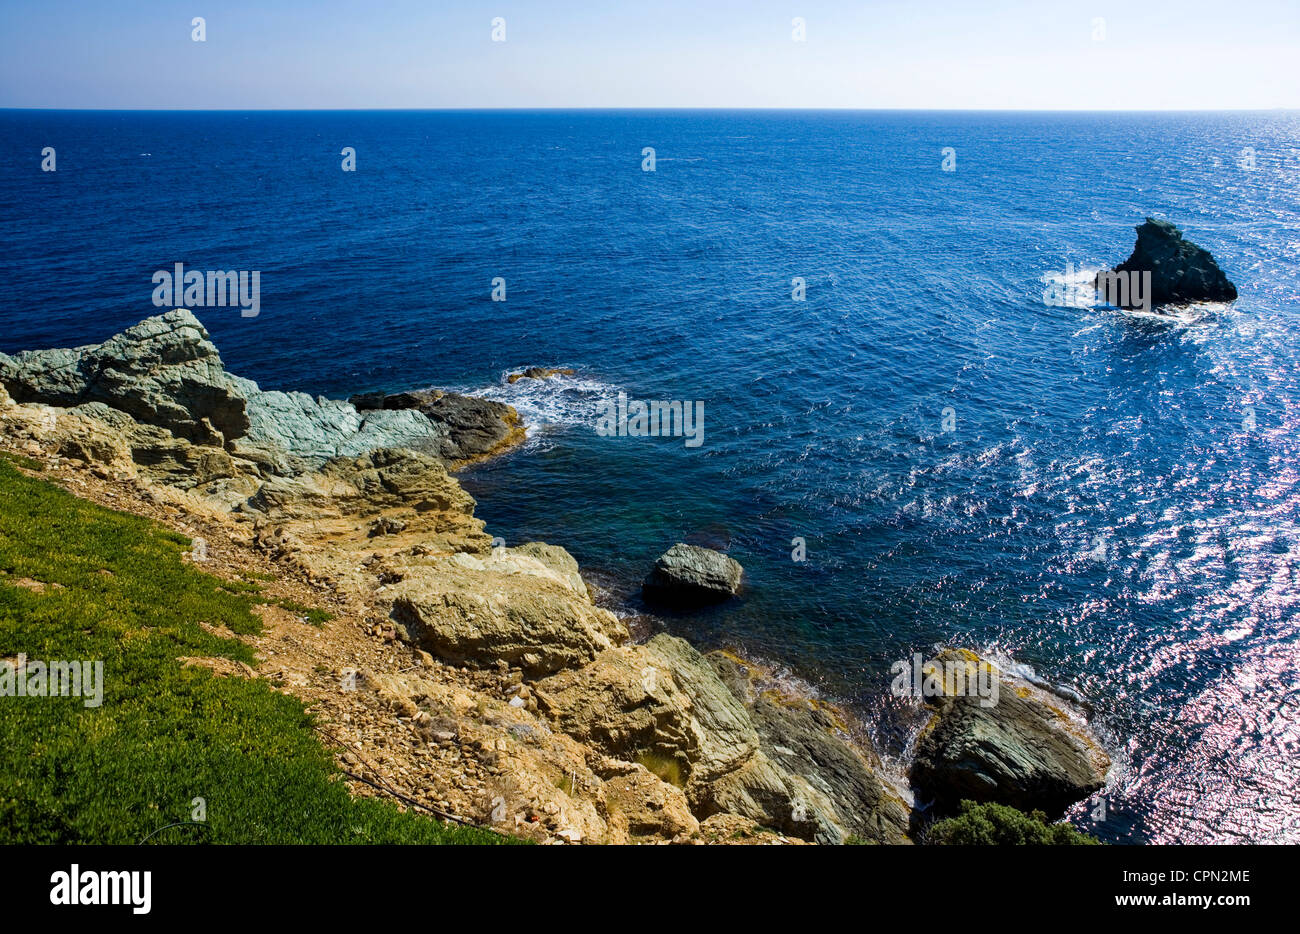 Europe Greece, Crete, tha Agia Pelagia bay - Stock Image